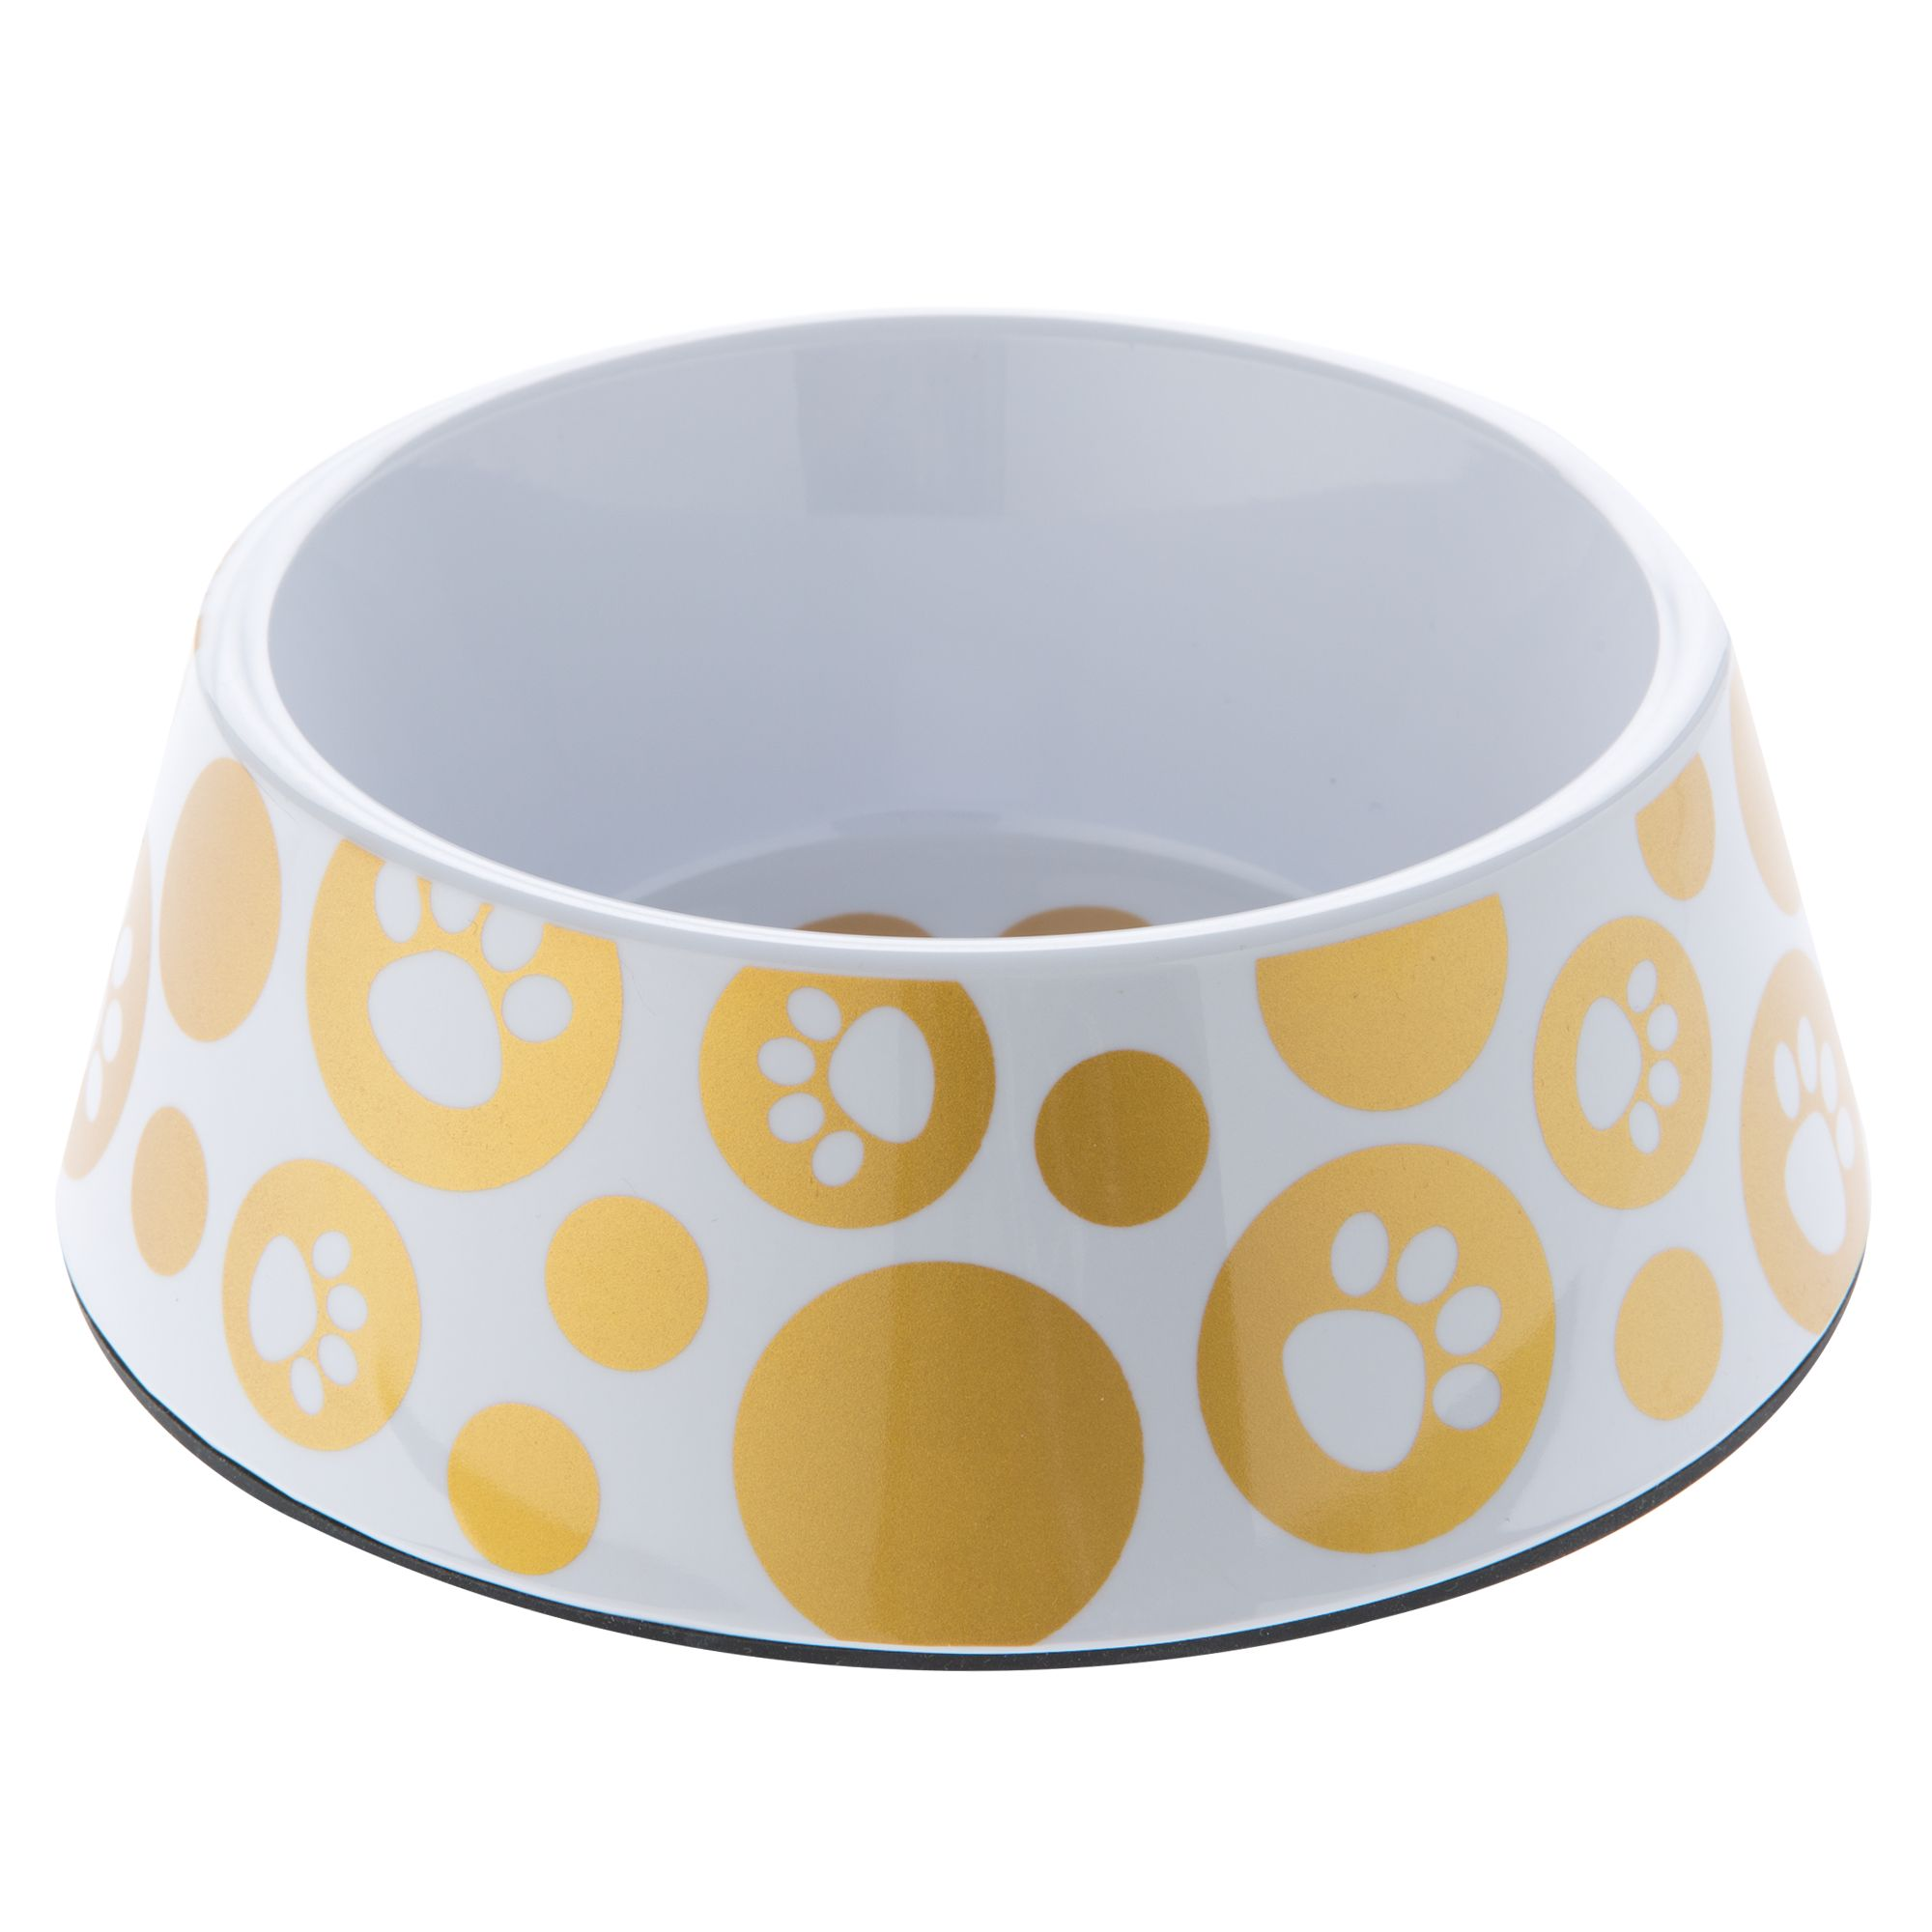 Top Paw Glitz Paws Dog Bowl size: 4 Oz, White 5250606